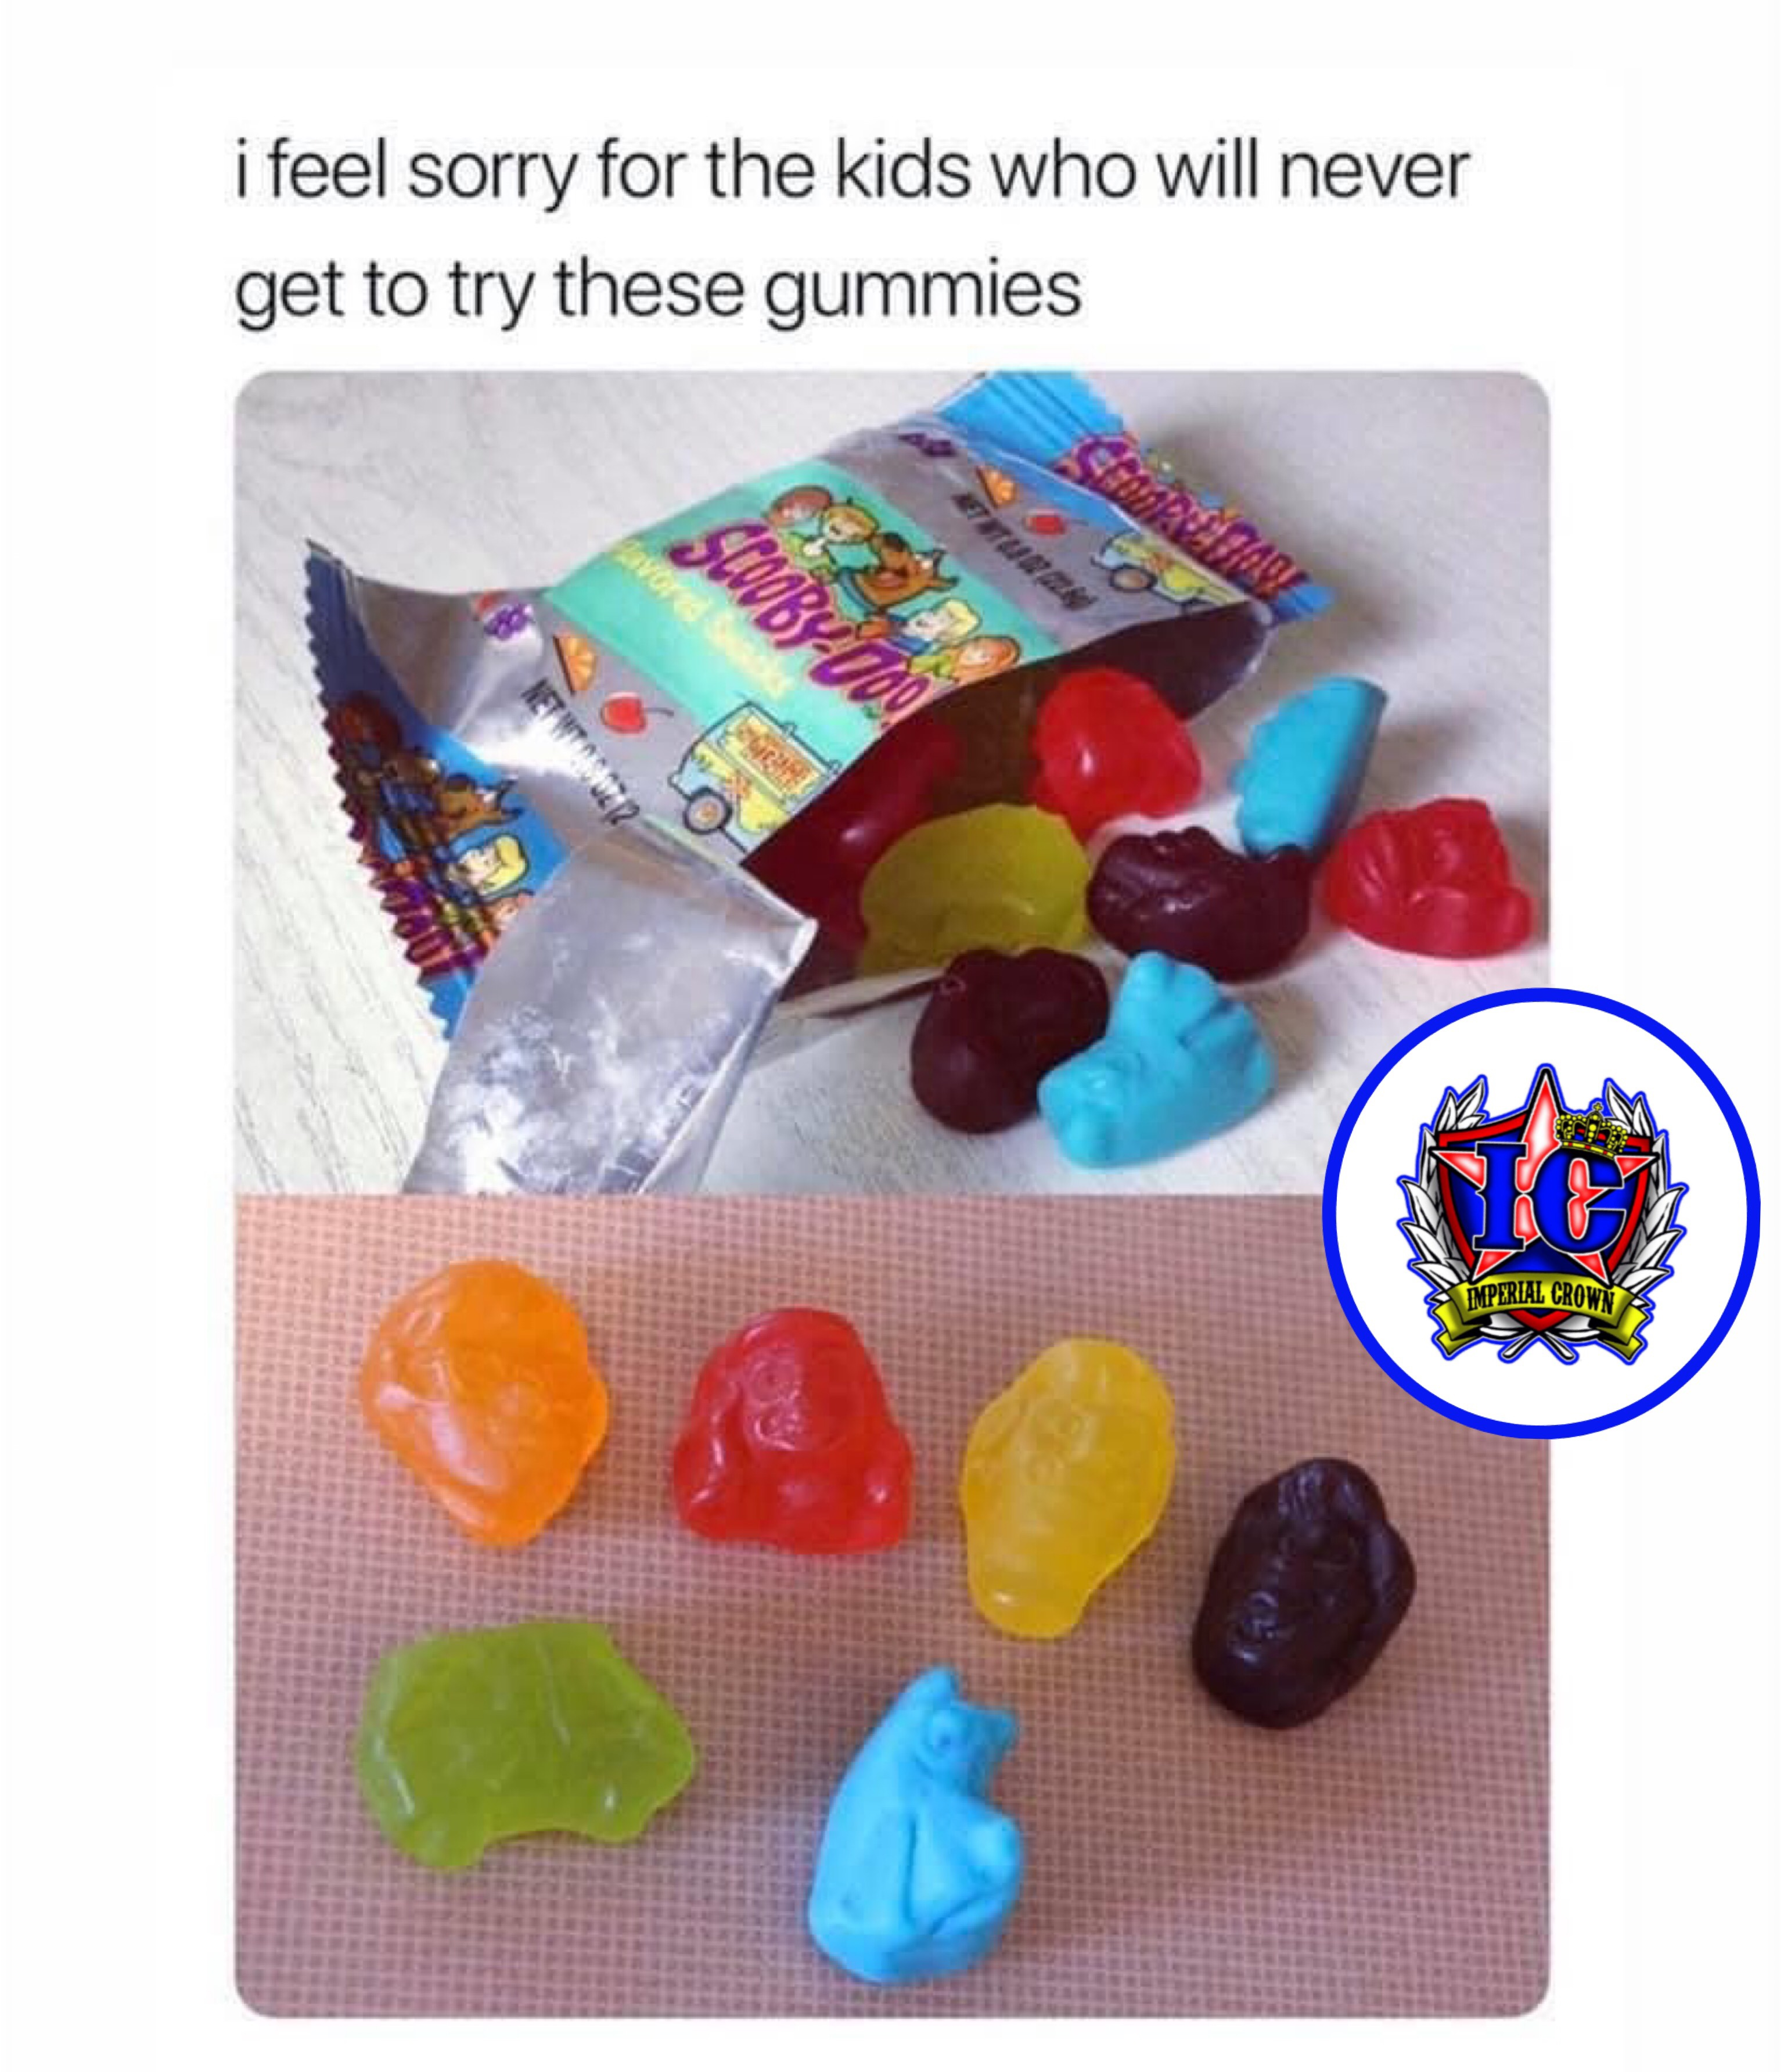 I feel sorry for the kids who will never get to try these gummies